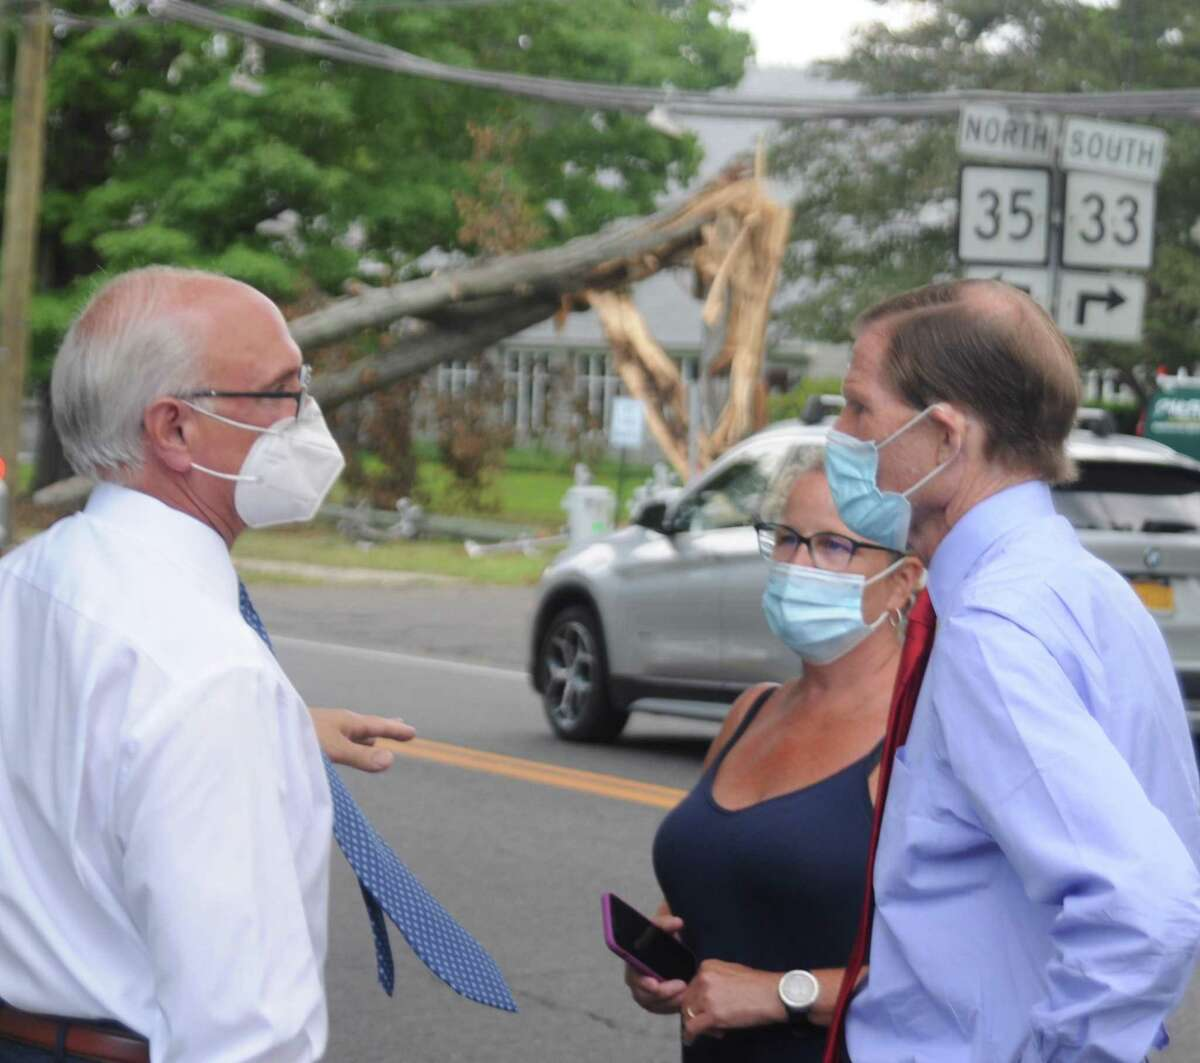 First Selectman Rudy Marconi, left, Bernard's owner Sarah Bouissou and U.S. Senator Richard Blumenthal discussed the lengthy storm clean-up Wednesday. The splintered tree which fell across Route 33 is visible behind them.